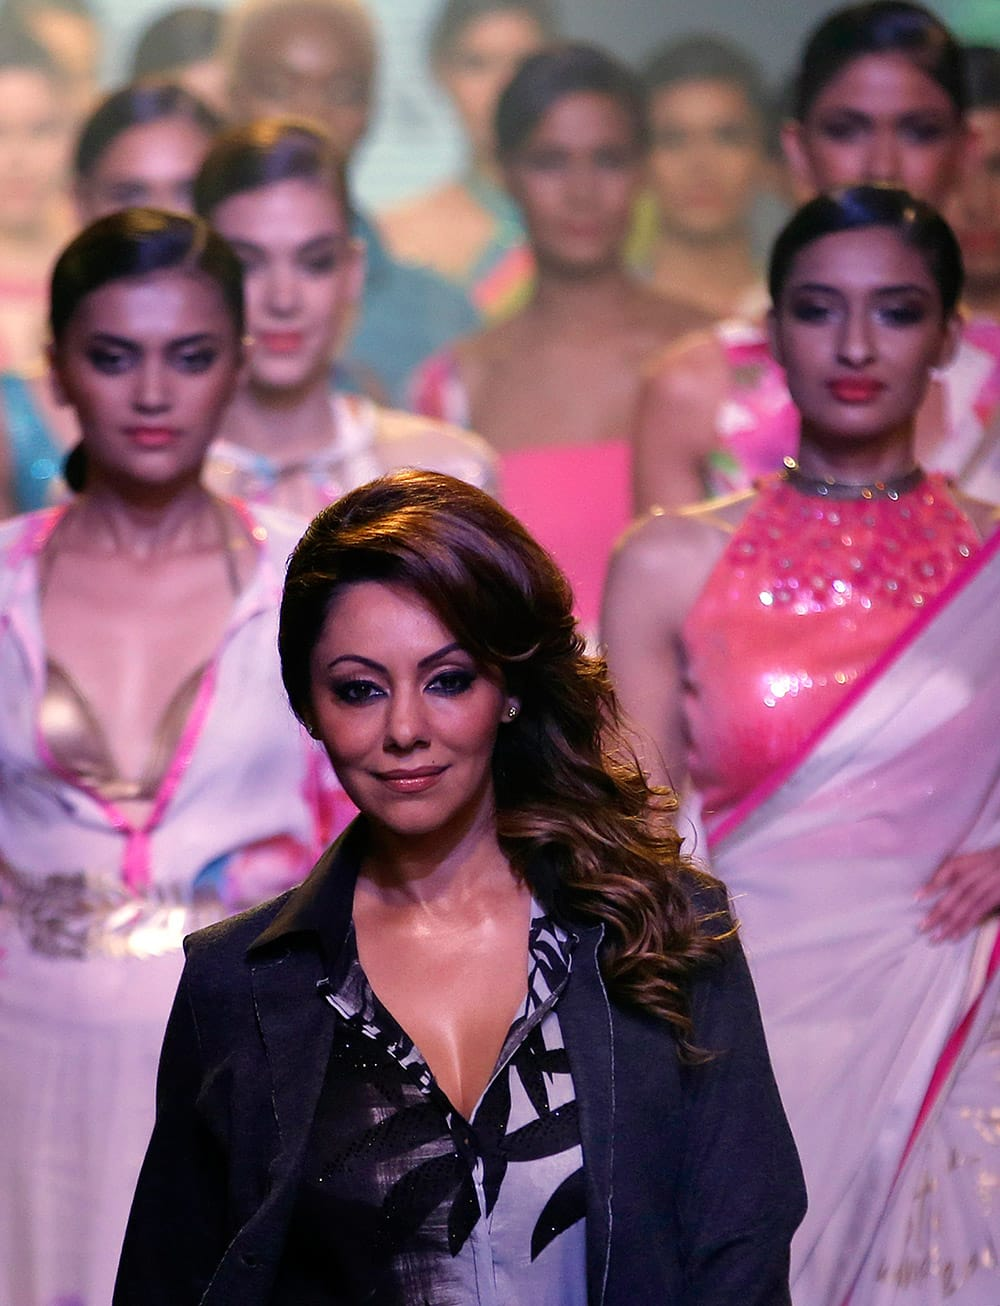 Gauri Khan joins models on the ramp during the Satya Paul by Gauri Khan show at the Lakme Fashion Week Summer Resort 2015 in Mumbai.